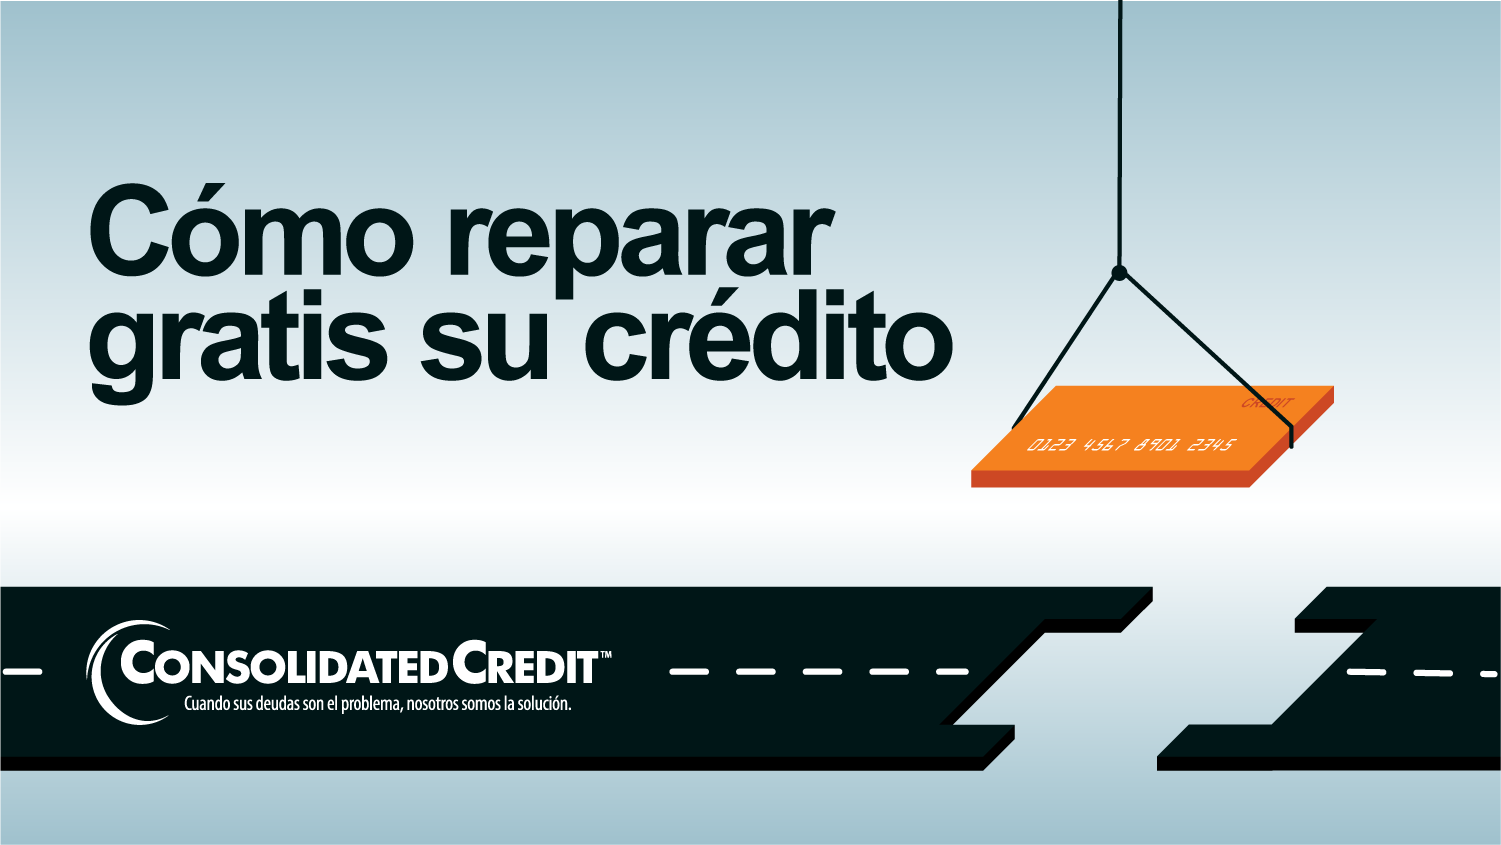 https://www.consolidatedcredit.org/es/wp-content/uploads/2020/08/TitleCard06_SP-IB.png